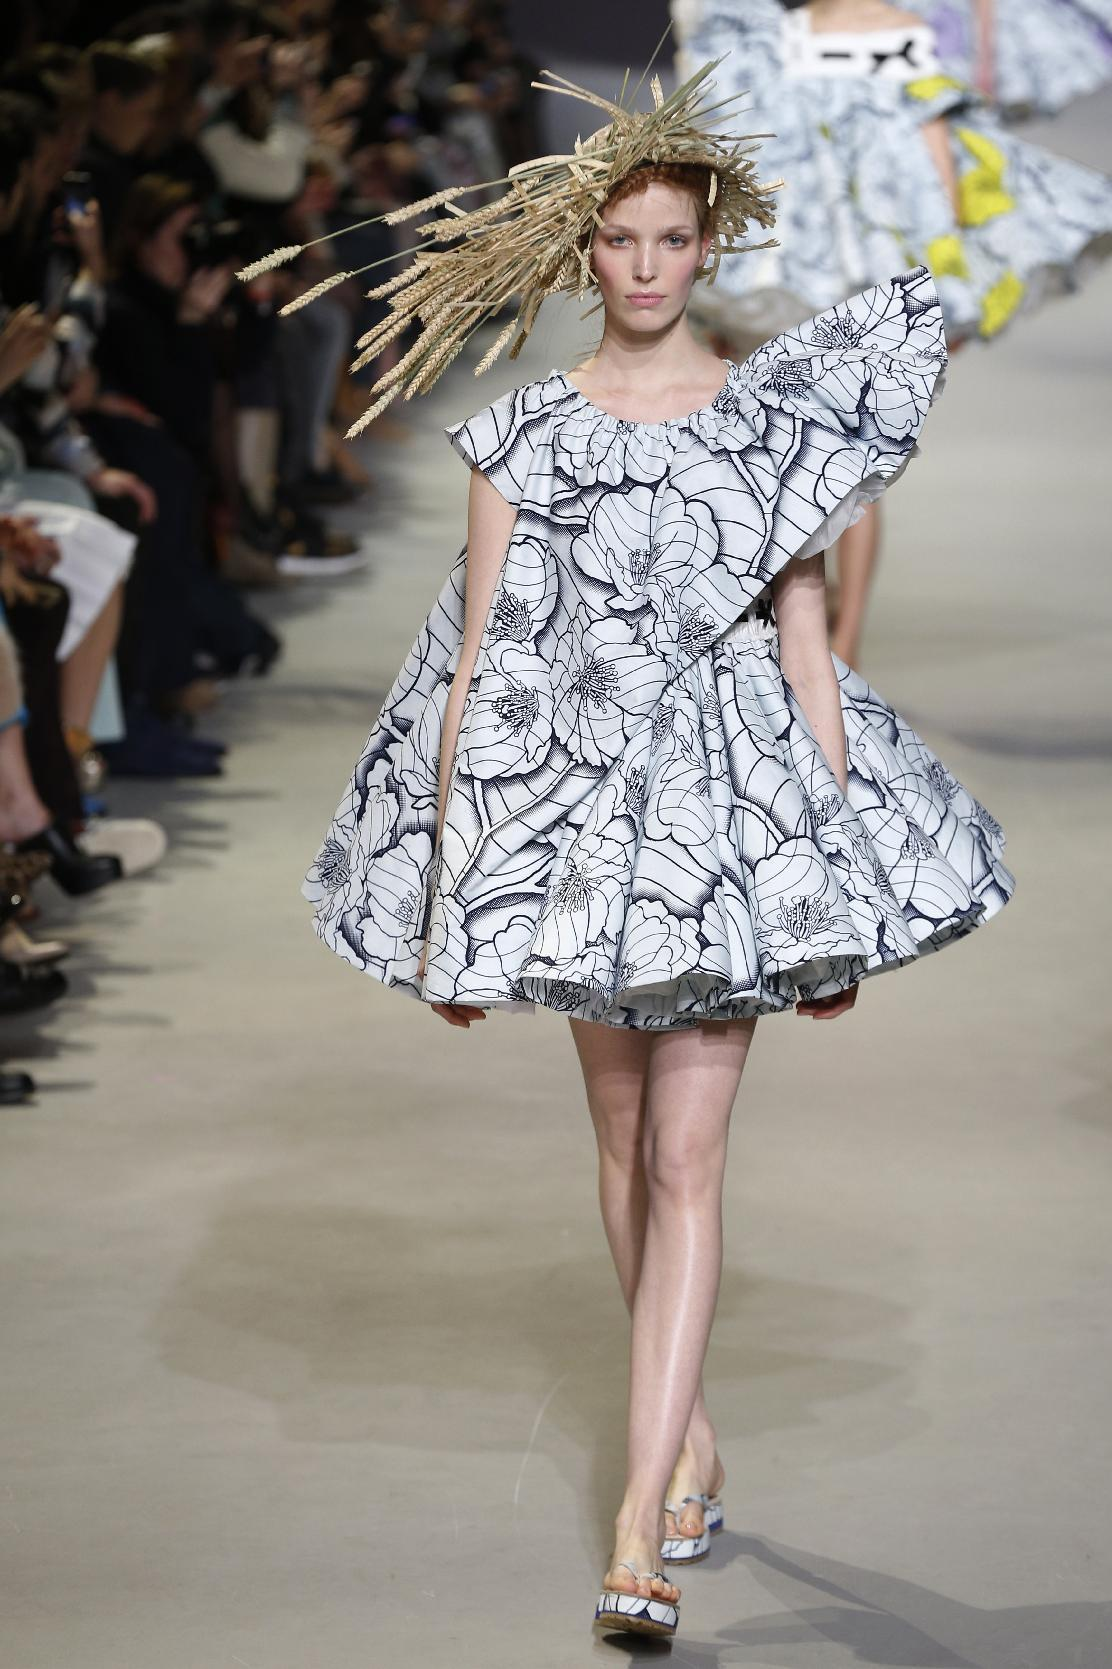 Paris haute couture: Viktor&Rolf's van Gogh girls